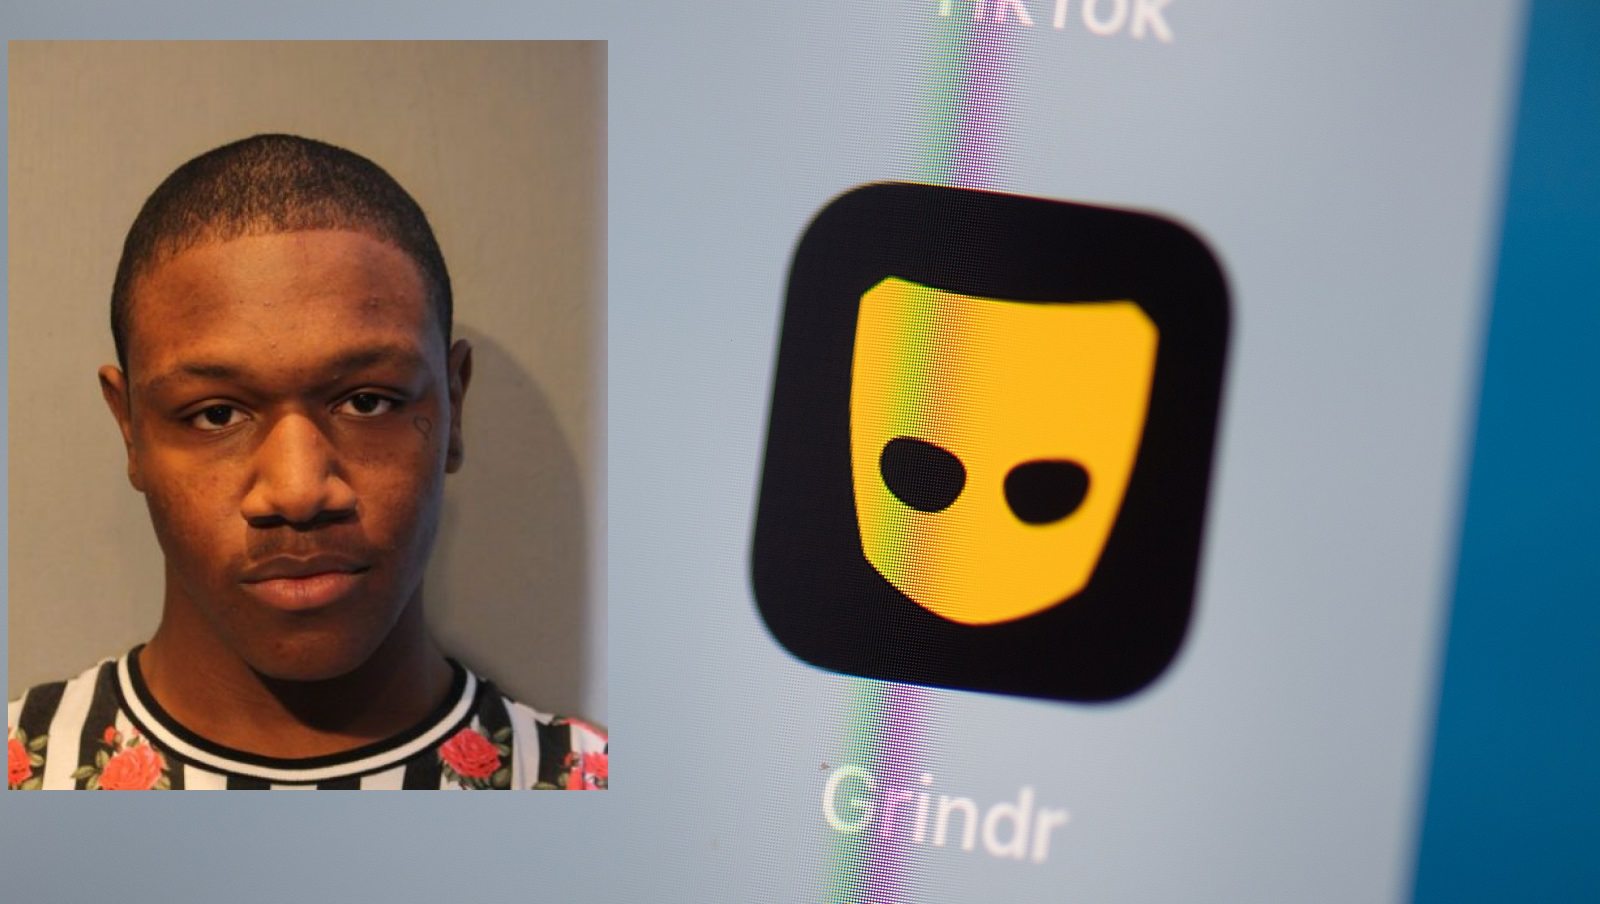 Thieves are using the popular gay dating app Grindr to